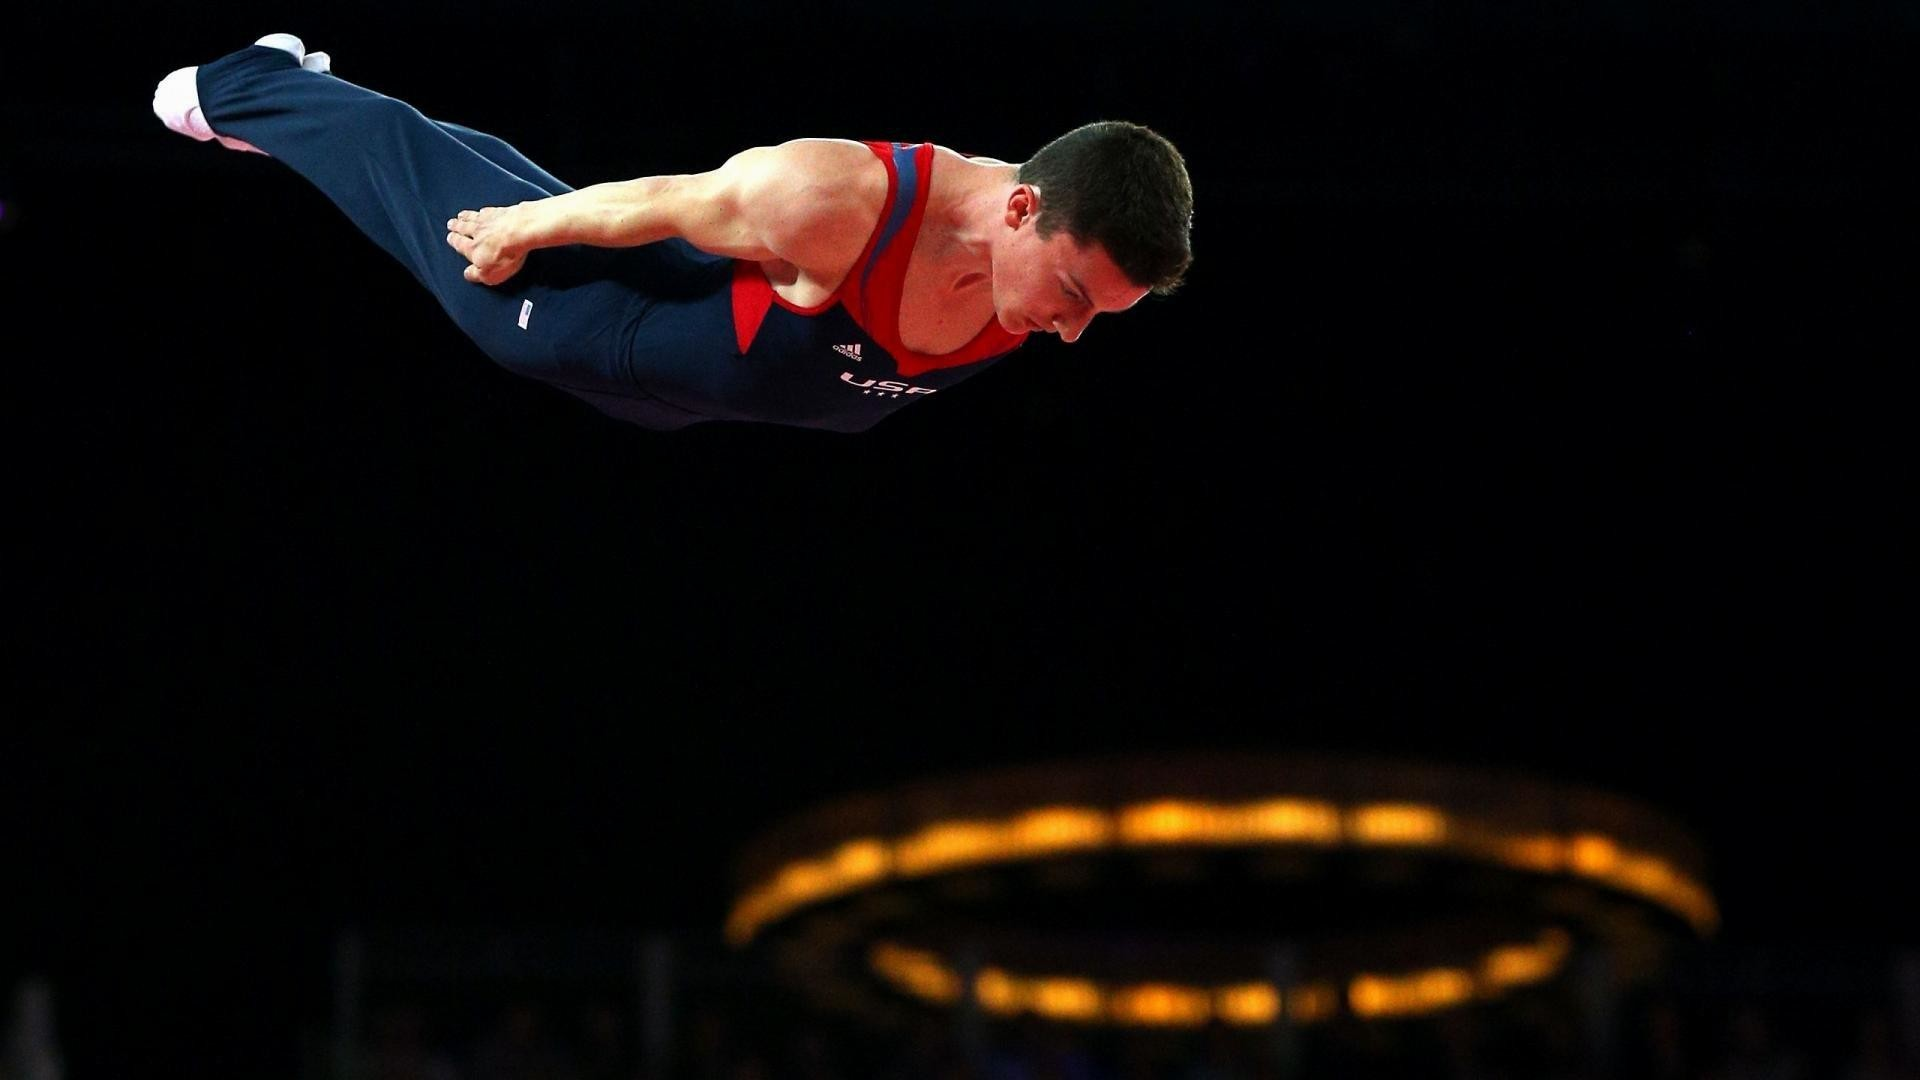 1920x1080 Wallpaperwiki Gymnastics Picture Free Download PIC WPE007399